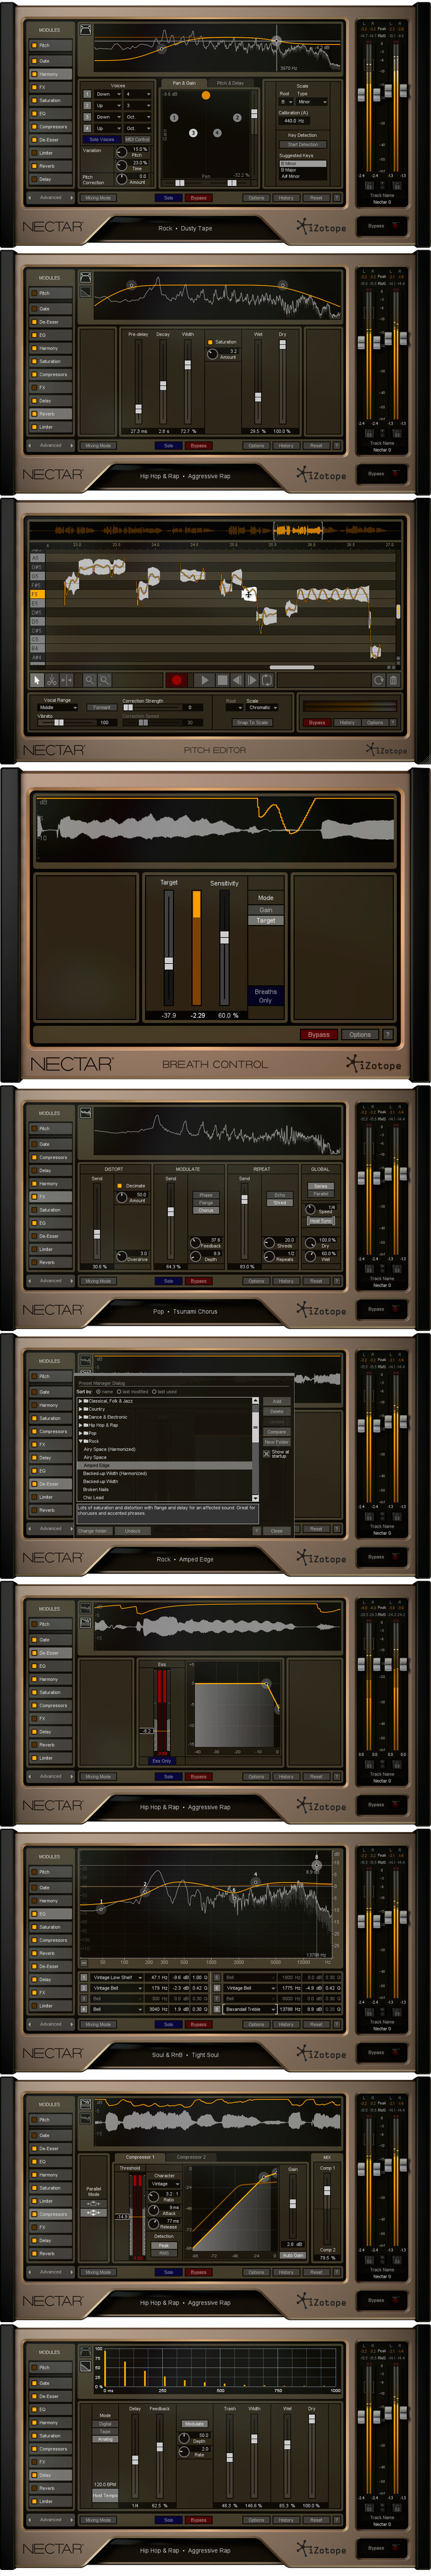 iZotope Nectar 2 Production Suite 2 04 for Mac OS X Free